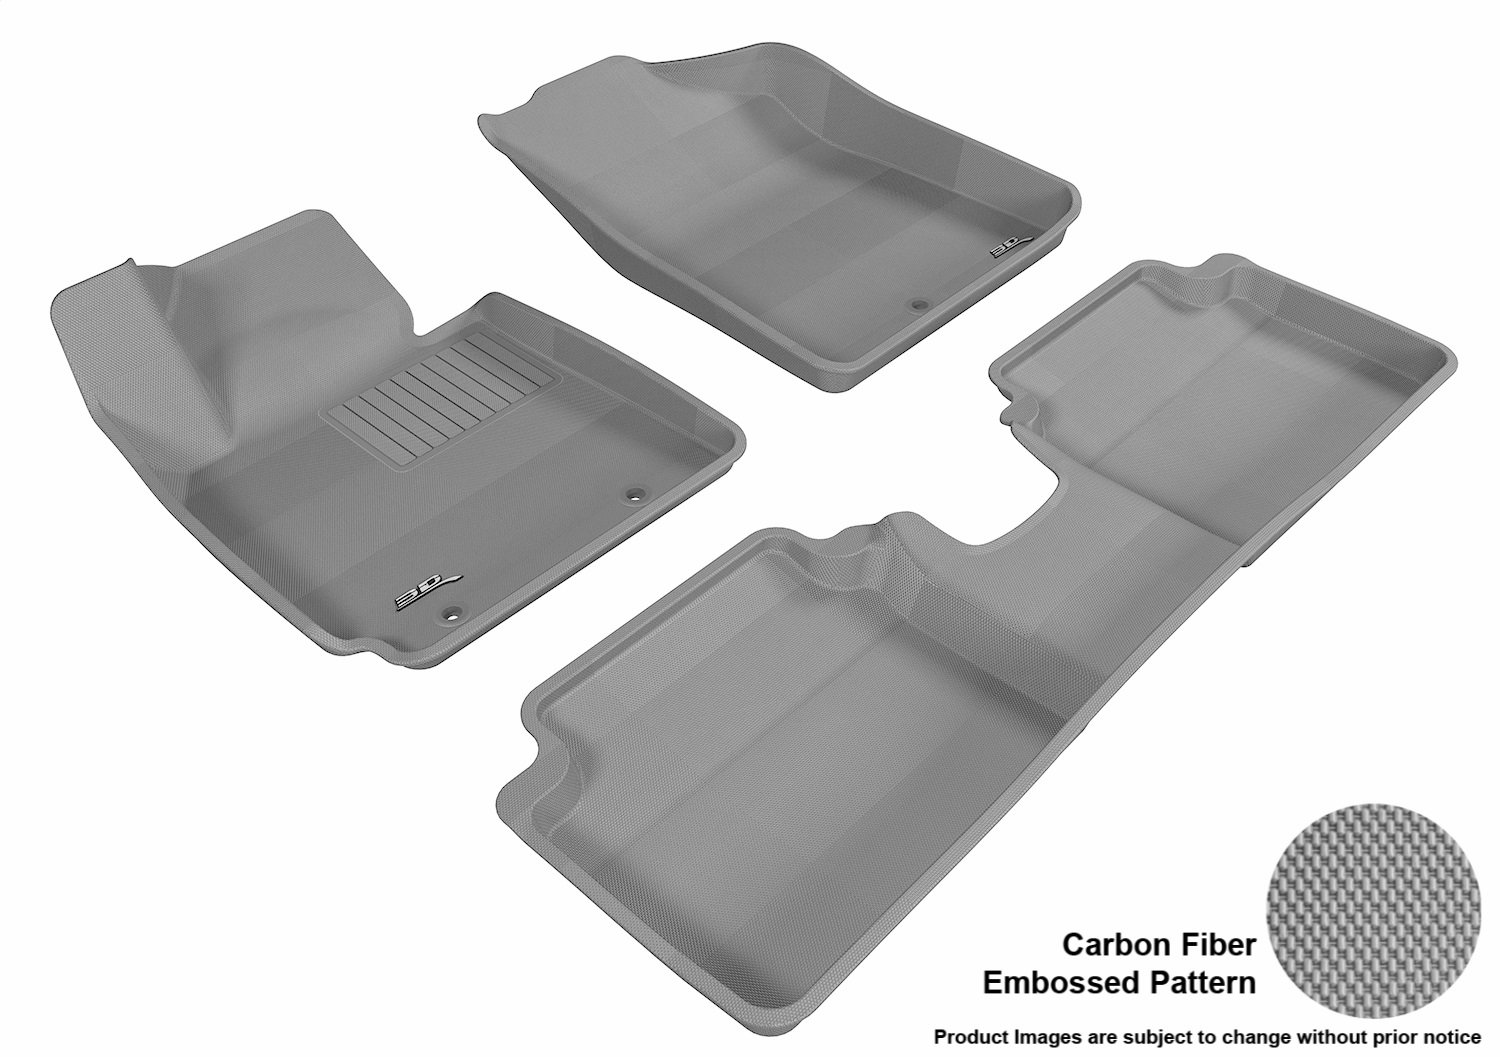 3D MAXpider Second Row Custom Fit All-Weather Floor Mat for Select Hyundai Veloster Models Tan Kagu Rubber L1HY02421502